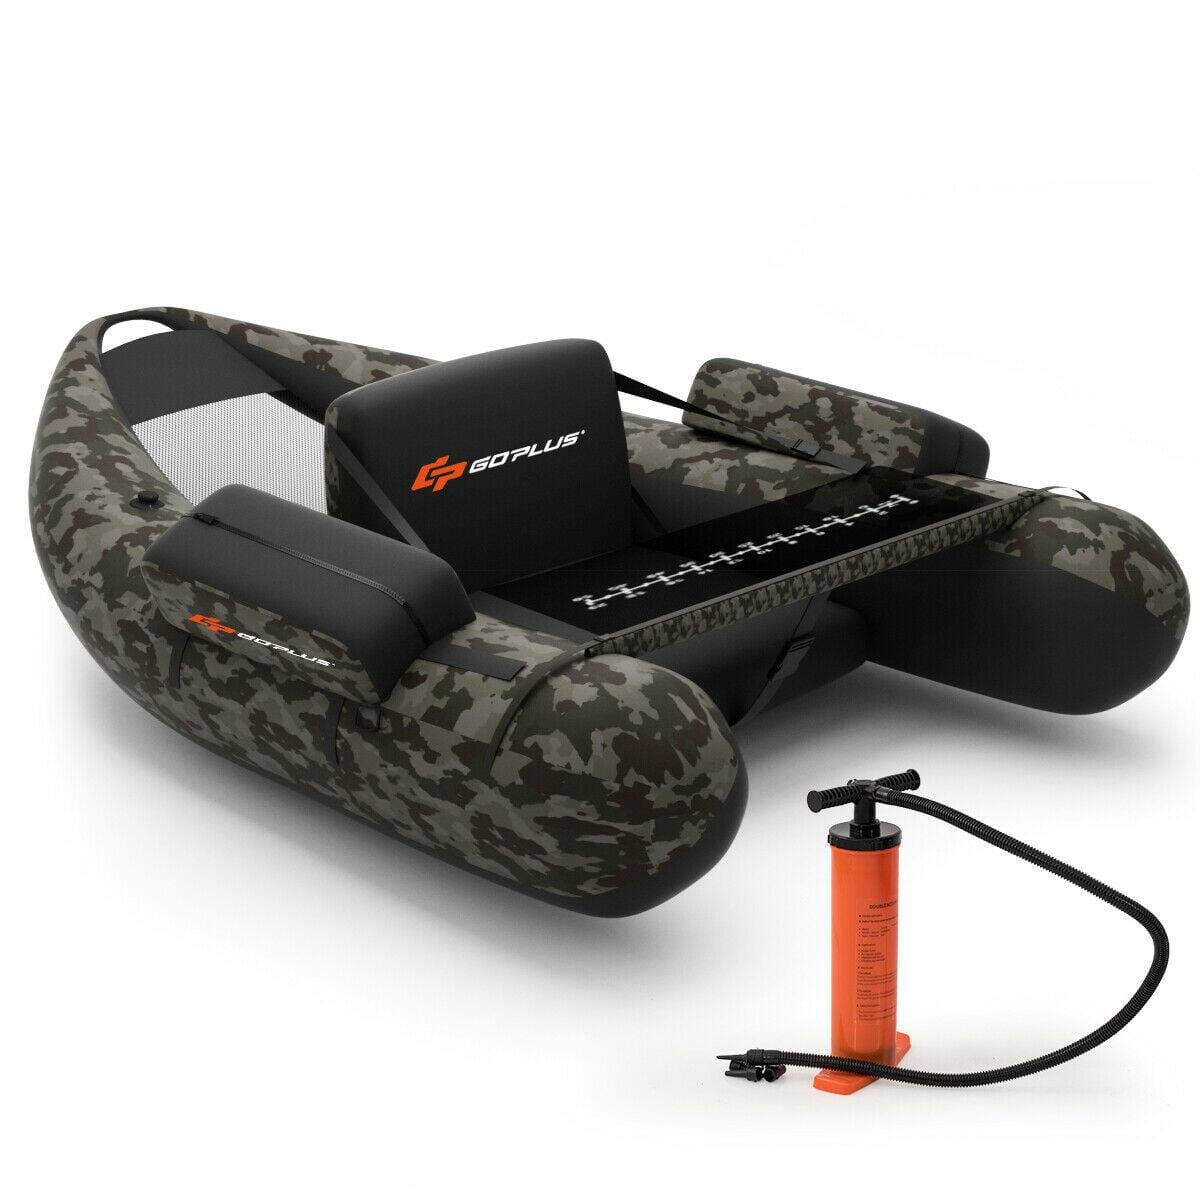 Costway Inflatable Fishing Float with Adjustable Straps & Storage Pockets-$129.95 + Free Shipping